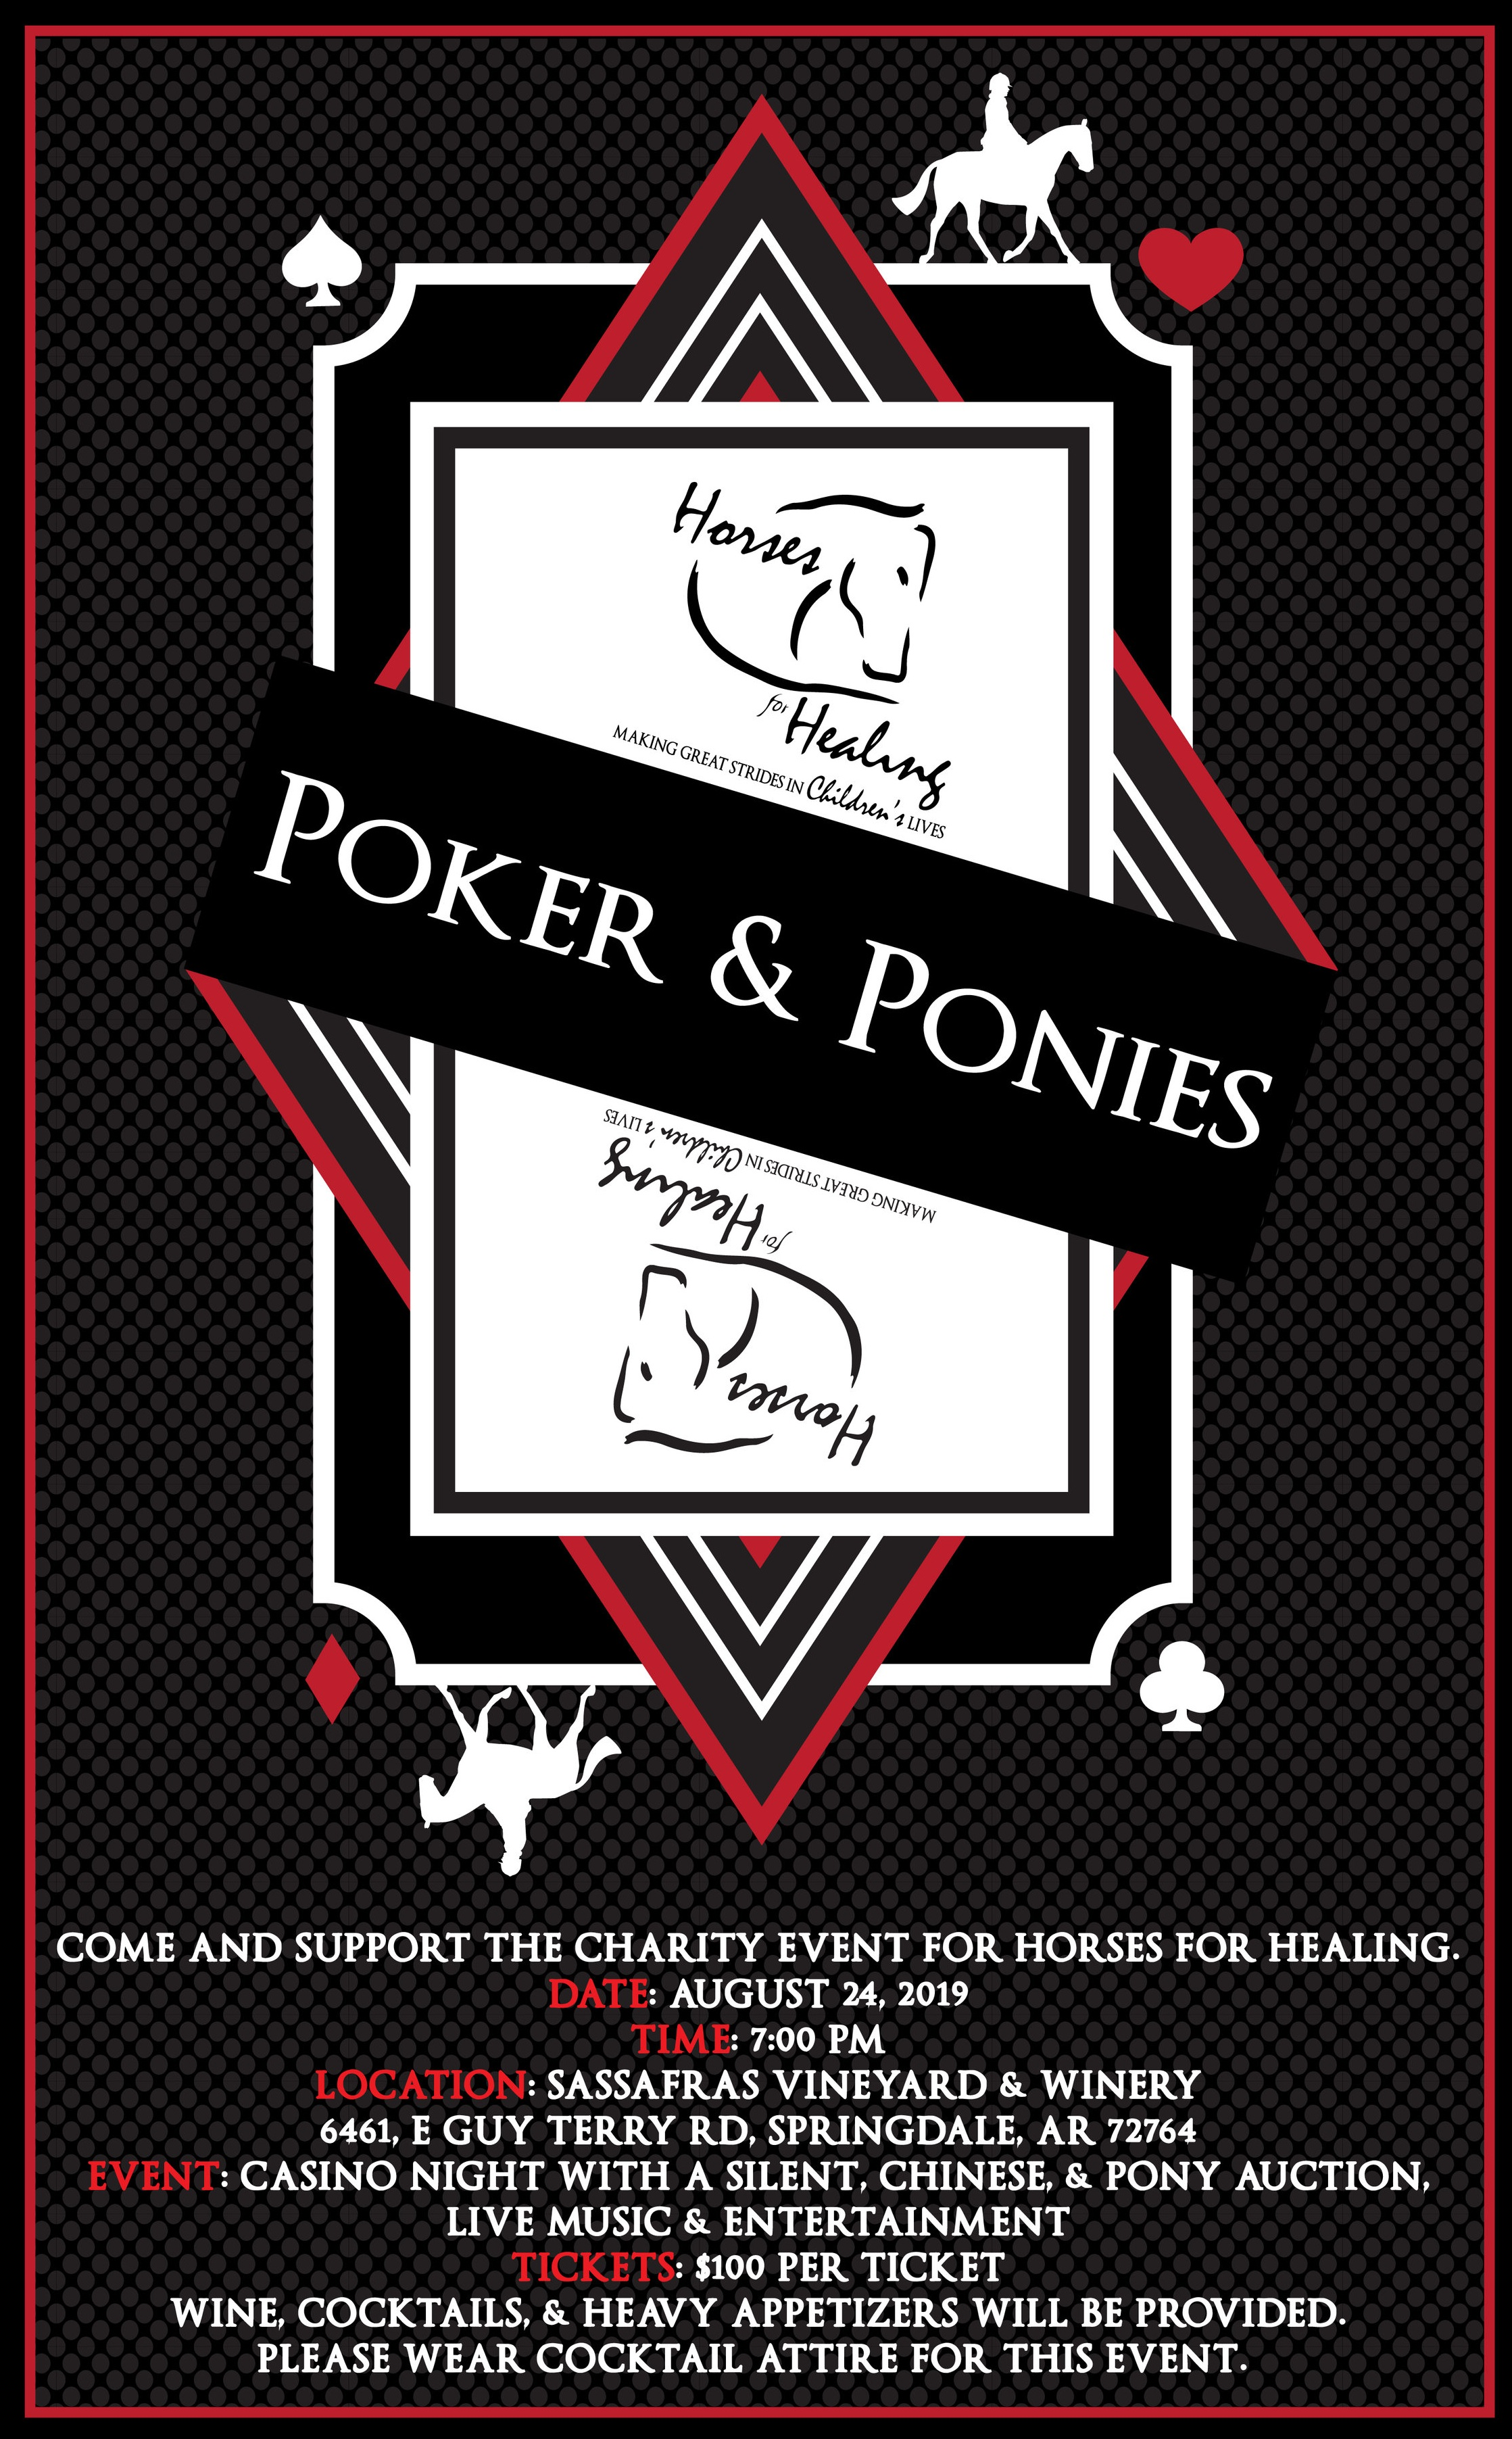 Horses for Healing - 2019 Poker & Ponies Fundraising EventSaturday, August 24, 2019Starts at 7:00 PMSassafras Vineyard & Winery6461 East Guy Terry RoadSpringdale, AR 72764